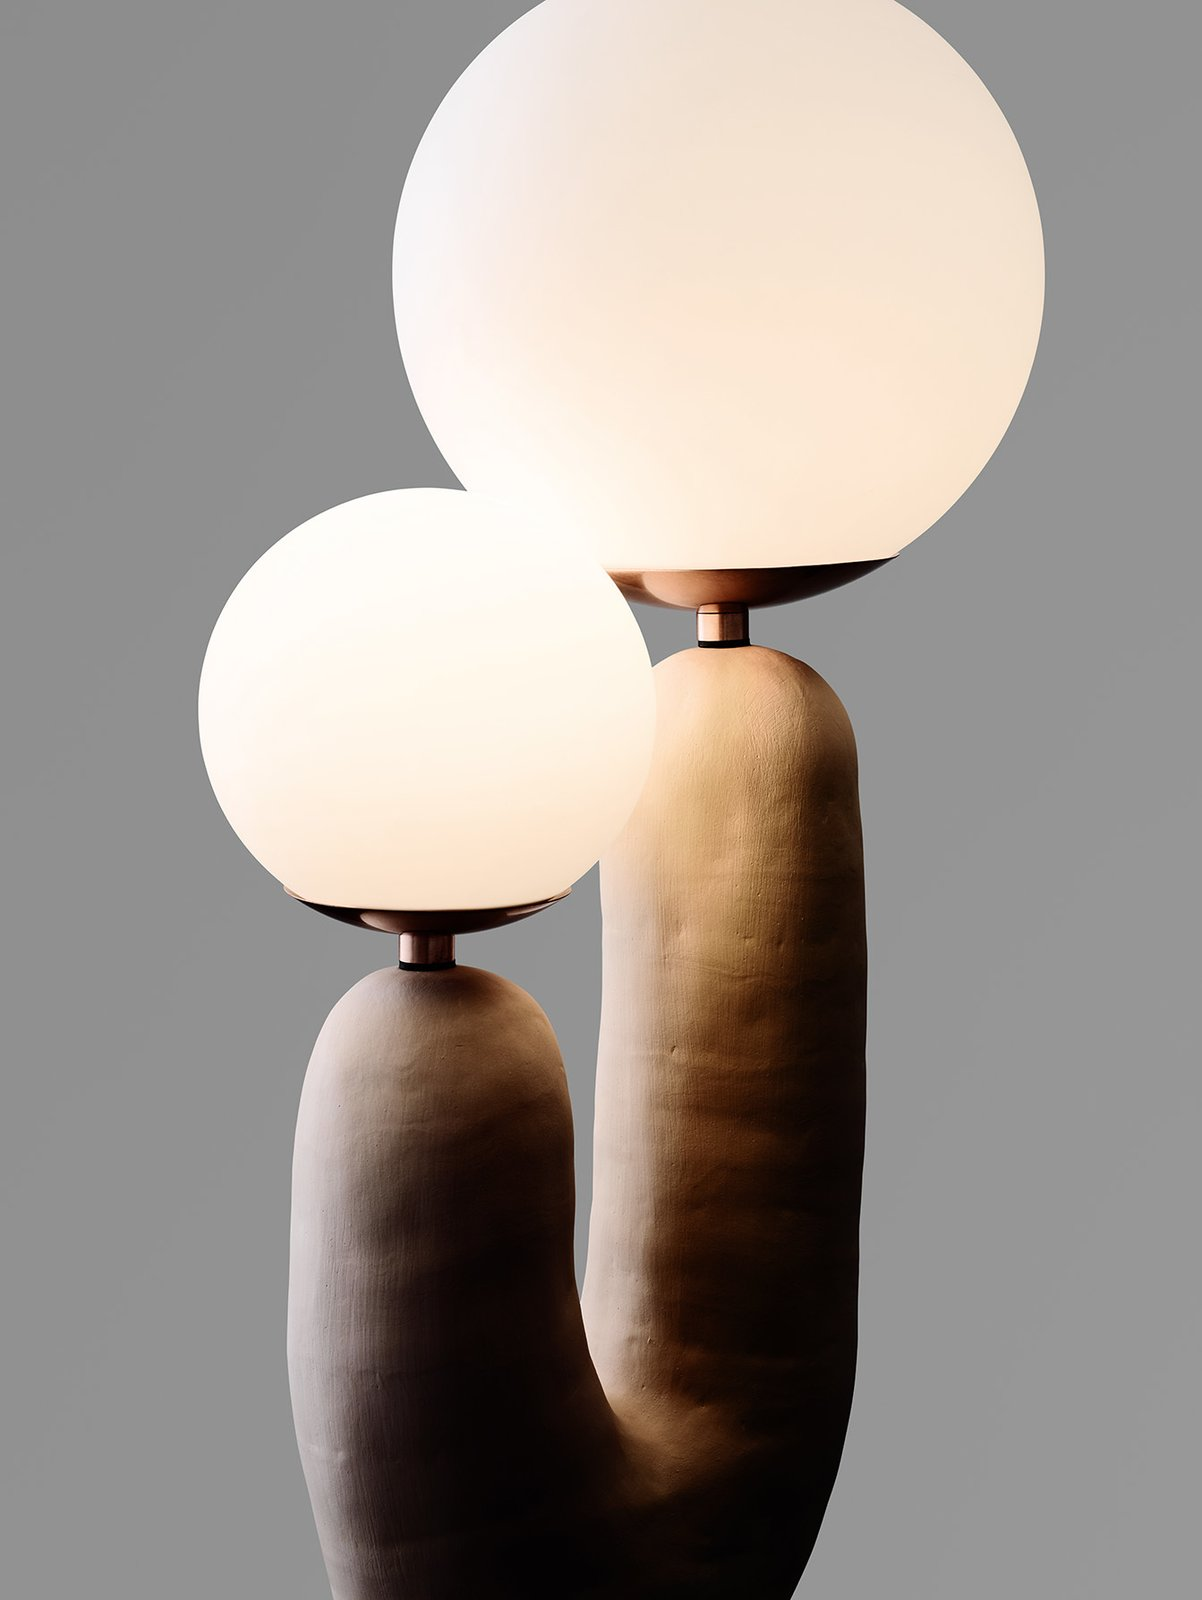 Living Room and Lamps Eny Lee Parker's hand-formed ceramic Oo lamp has the sculptural quality that distinguishes her furniture and lighting.  Photo 9 of 25 in Meet the Dwell 24: Two Dozen Up-and-Coming Designers to Watch in 2018